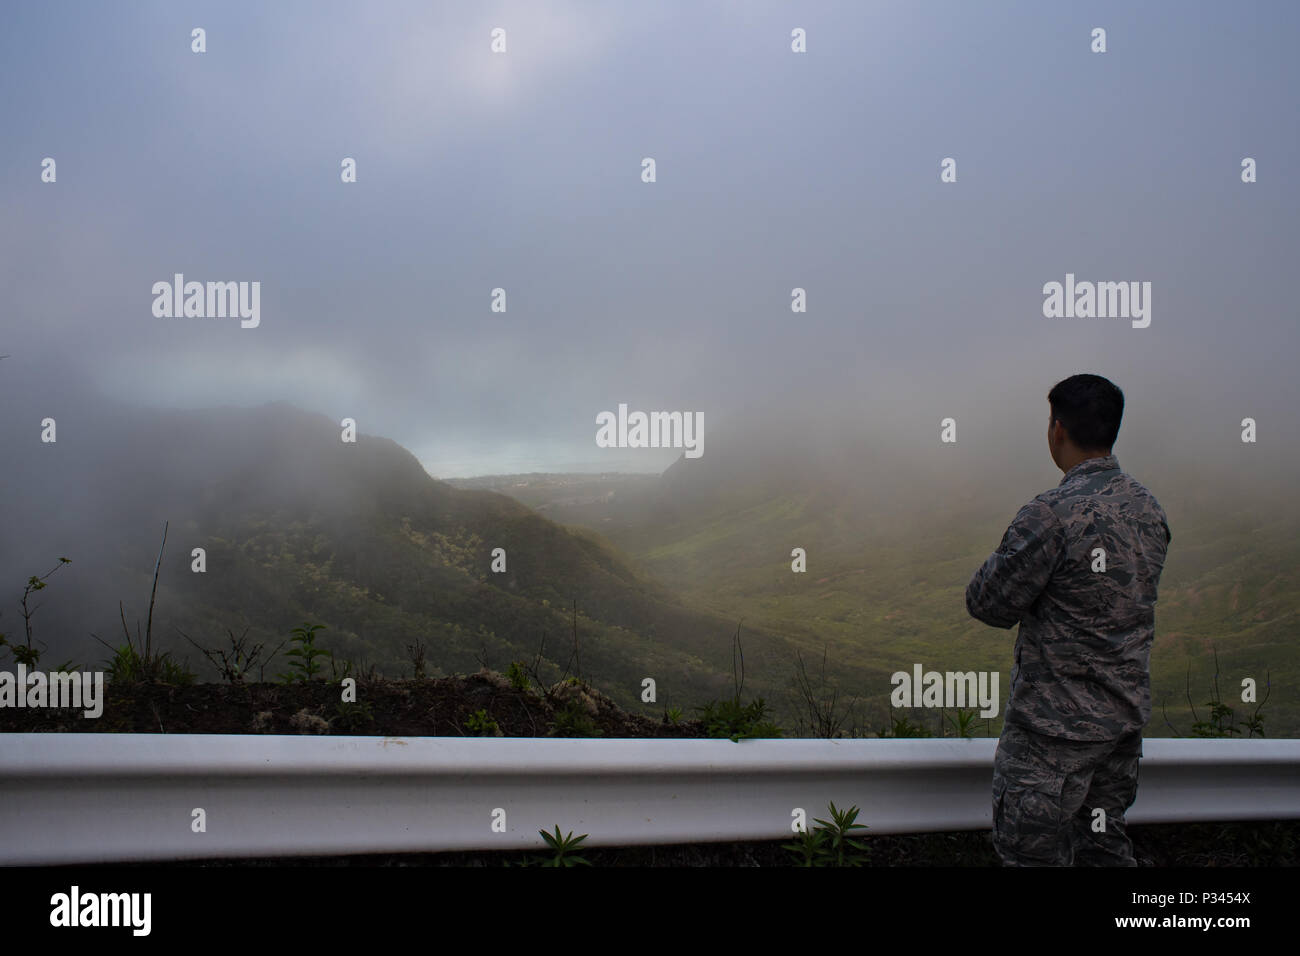 Airman 1st Class Kevin Plunkett, a radio frequency transmissions systems technician with the Hawaii Air National Guard's 169th Air Defense Squadron, looks out over the island of Oahu from the Ka'ala Air Force Station's main access road, Aug. 12, 2016, Oahu, Hawaii. The Hawaii Air National Guard oversees the monitoring of the airspace around the Hawaiian Islands at Wheeler Army Airfield, Oahu, Hawaii. (U.S. Air Force photo by Tech. Sgt. Brandon Shapiro) Stock Photo